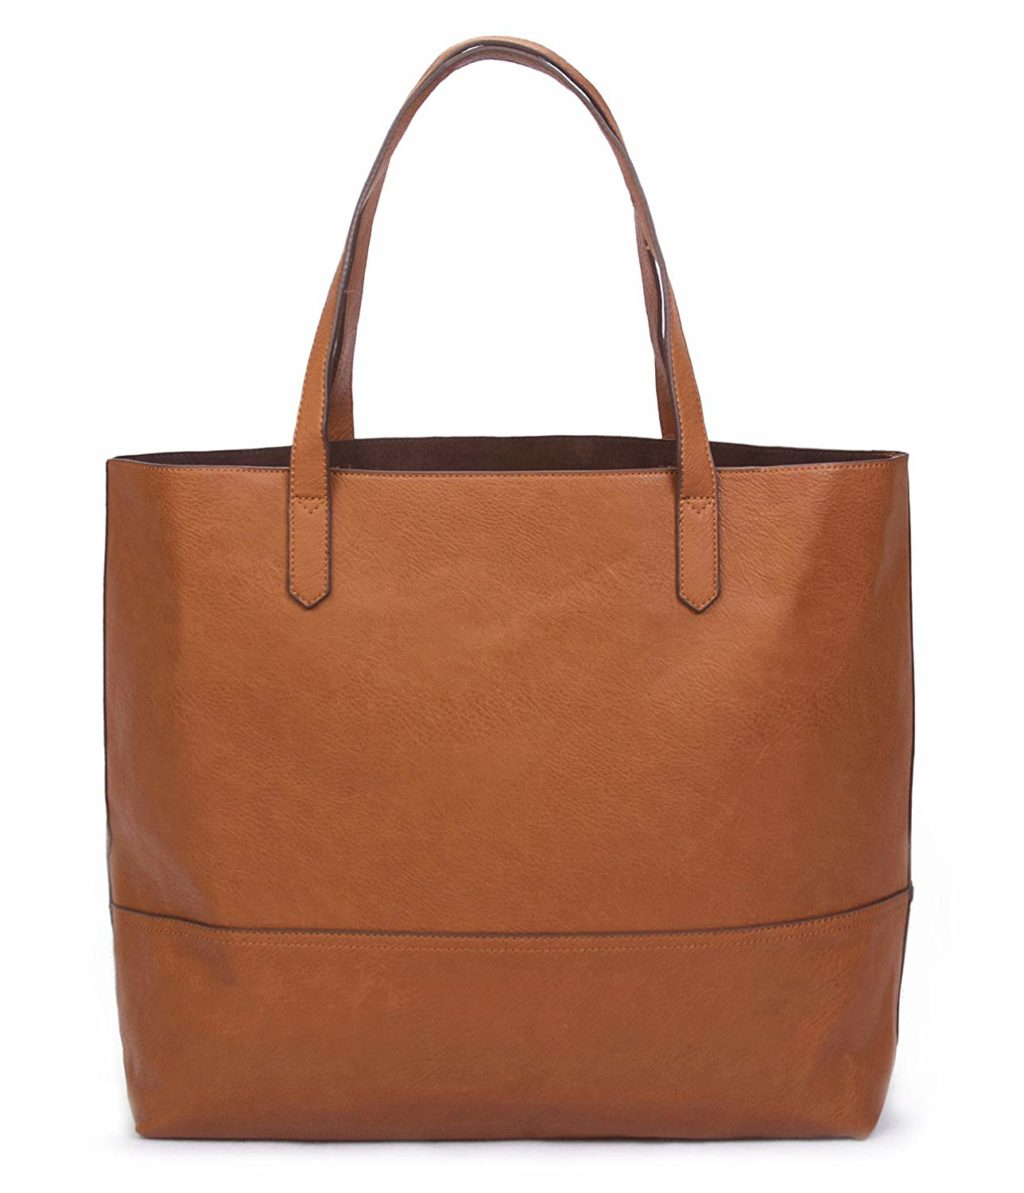 Overbrooke Vegan Tote: The Ultimate List of the Best Vegan Travel Bags